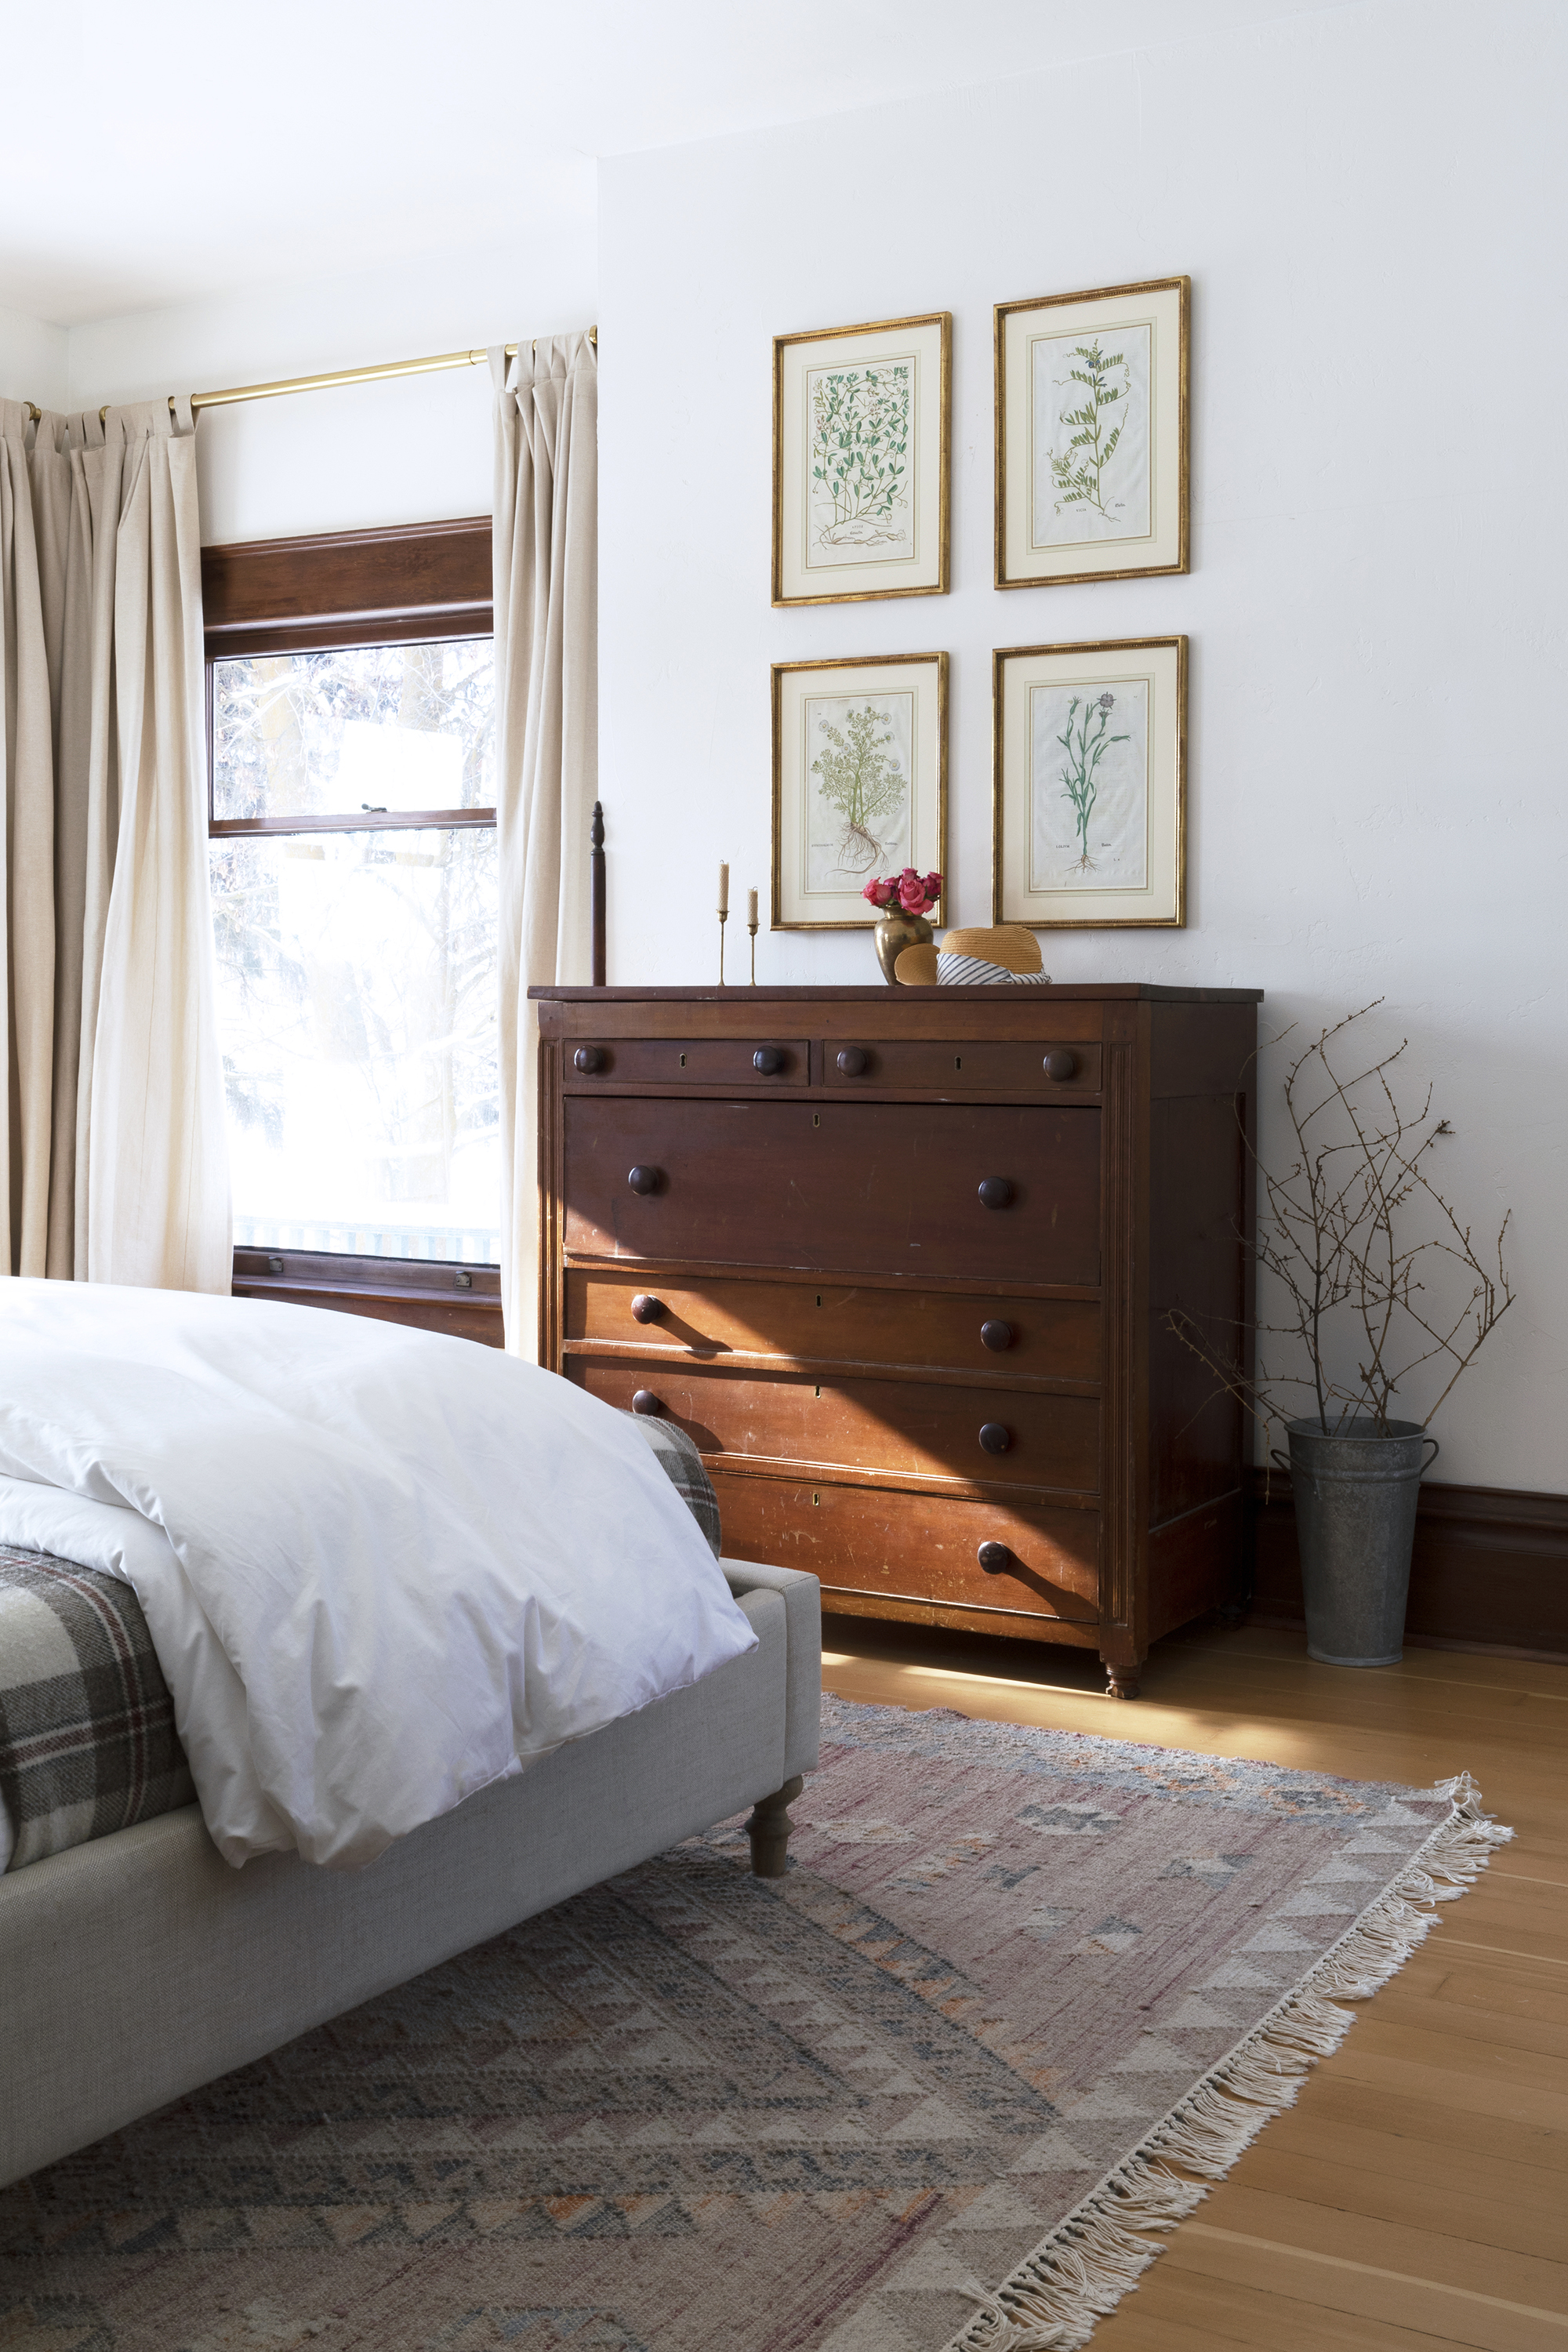 The Grit and Polish - Farmhouse Master Bedroom Botanicals 2 CLEAN 2000.jpg